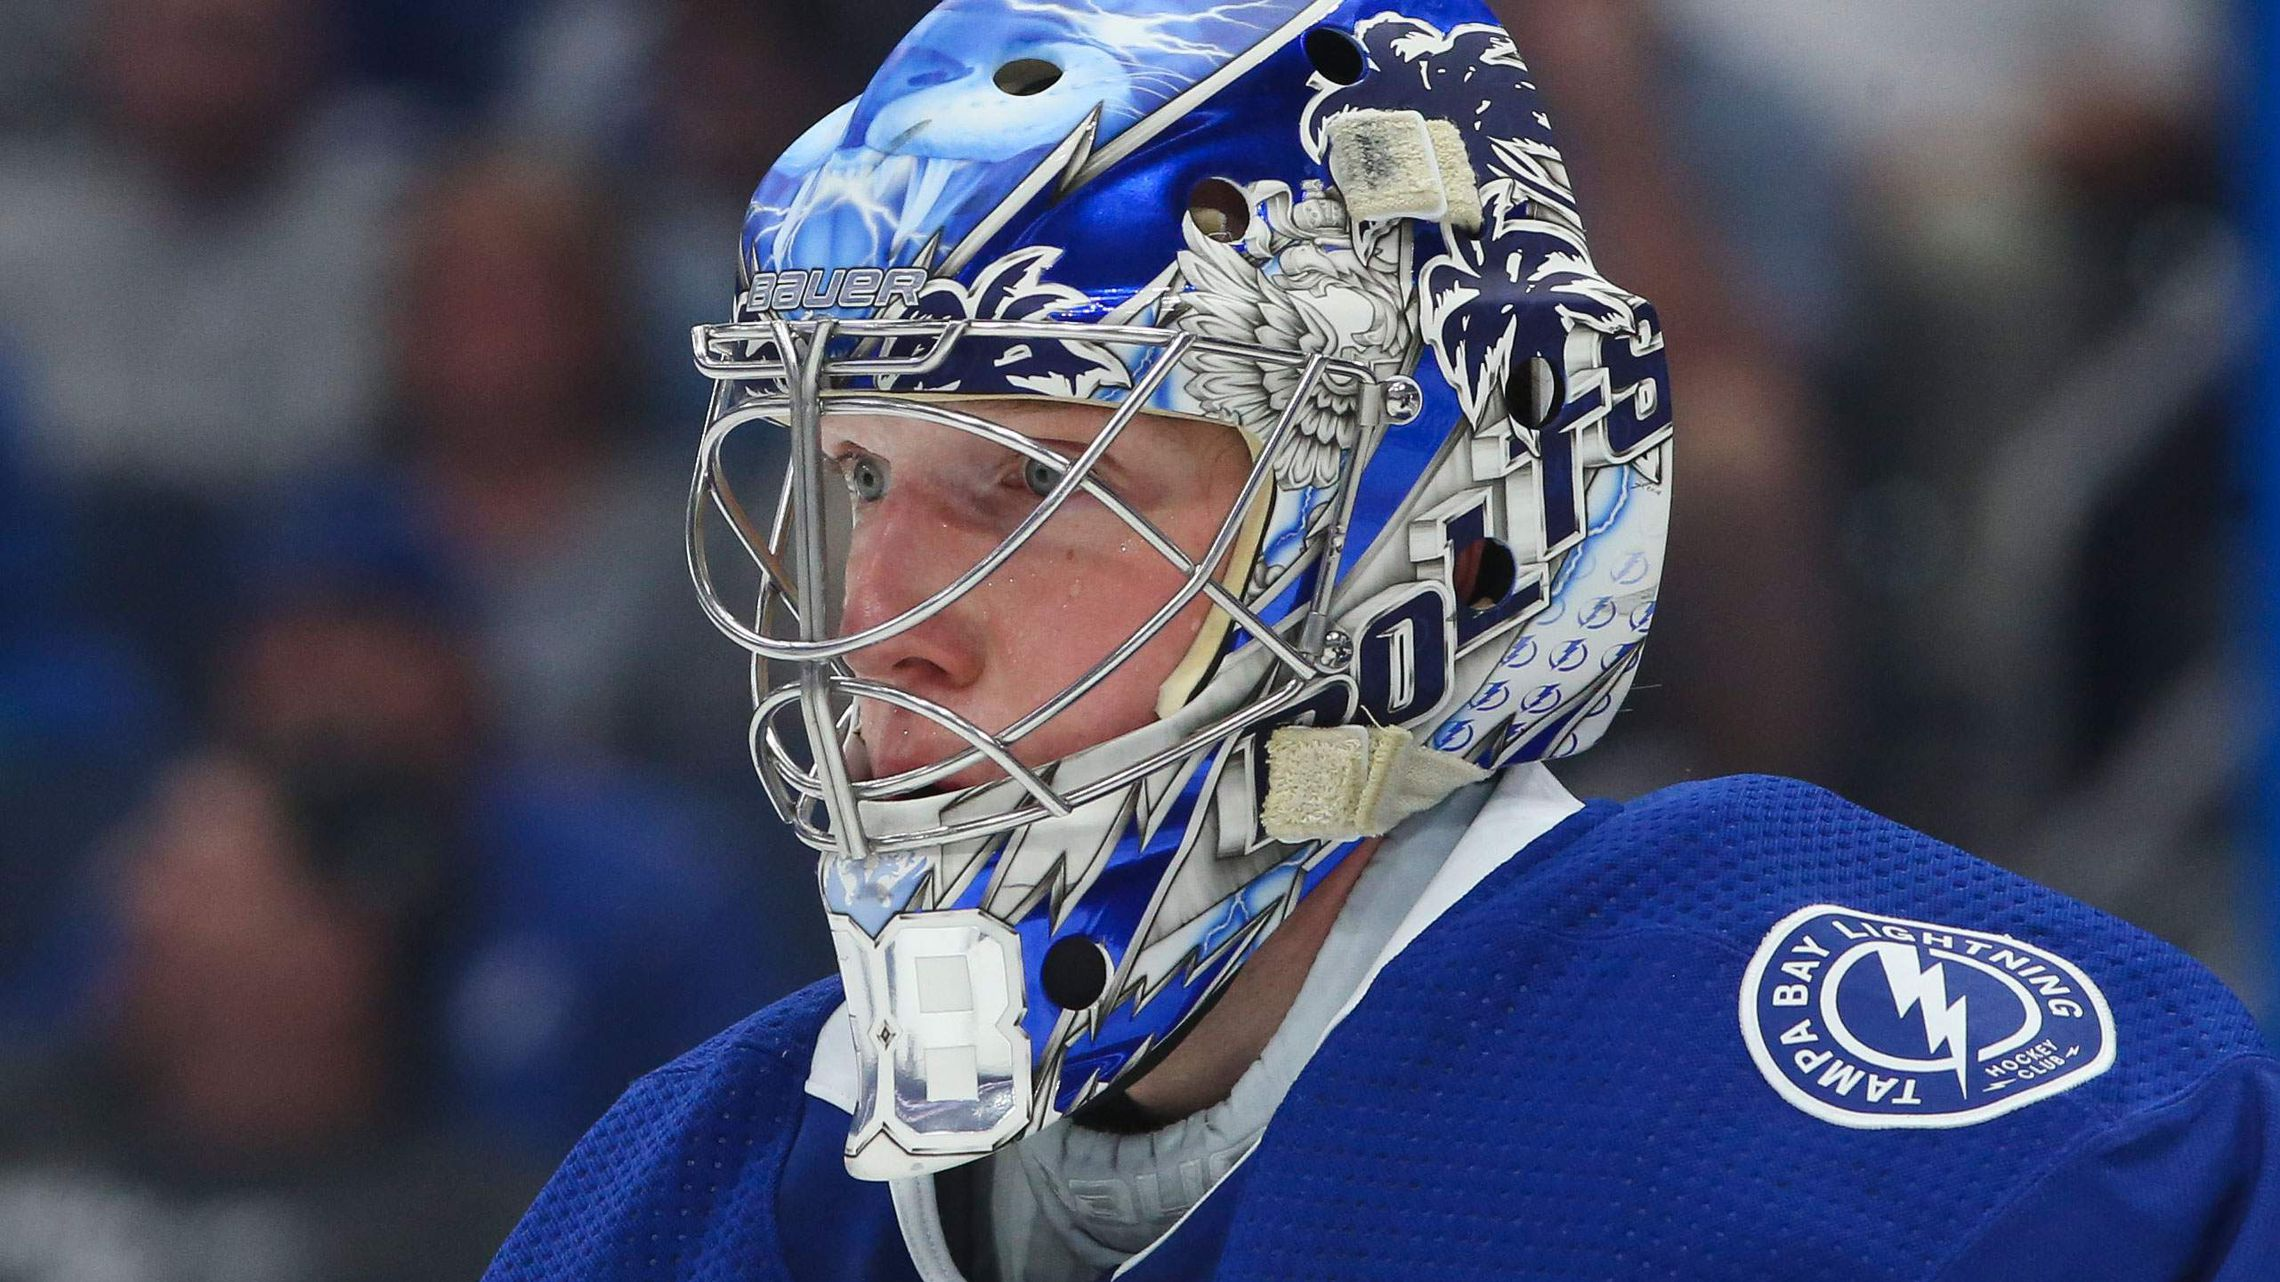 Lightning Goalies Express Their Personalities With Mask Designs